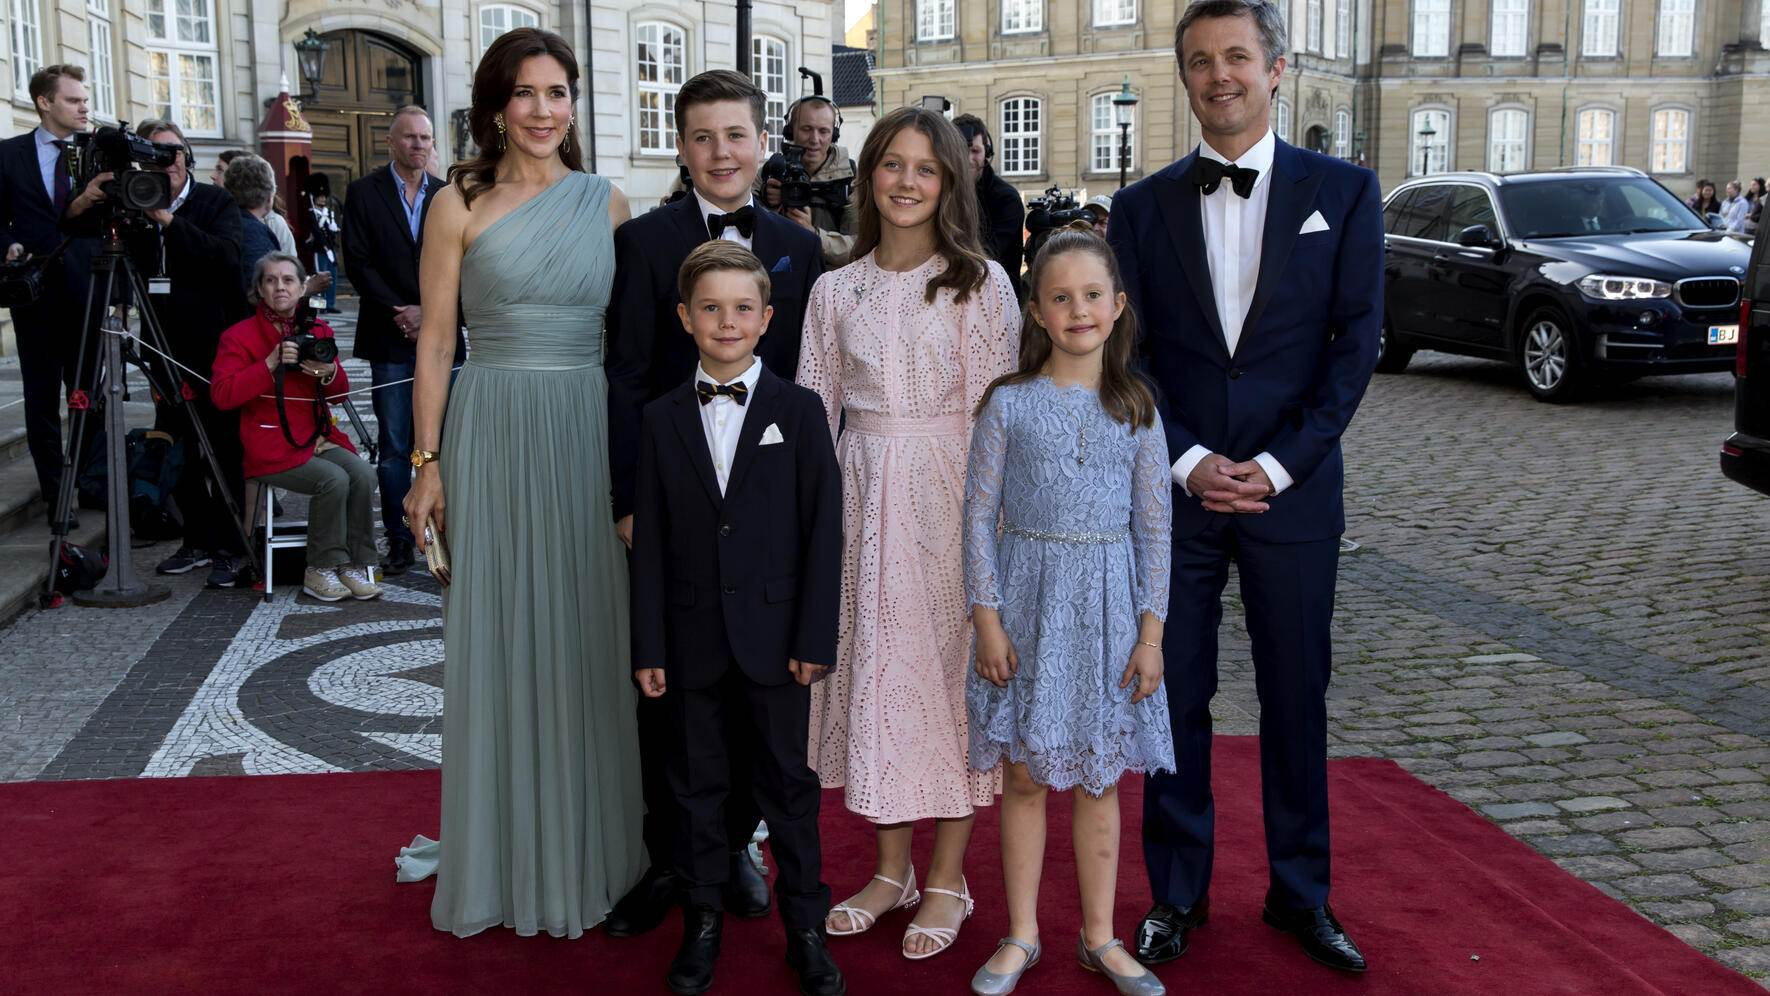 COPENHAGEN, DENMARK - JUNE 07:  Crown Prince Frederik and Crown Princess Mary and their four children arrive at Amalienborg Royal Palace where Queen Margrethe of Denmark host a dinner party  celebrating the 50th  birthday of Prince Joachim on June 7, 2019 in Copenhagen, Denmark. The dinner was held as a private dinner with the nearest family and friends of Prince Joachim.  (Photo by Ole Jensen/Getty Images)